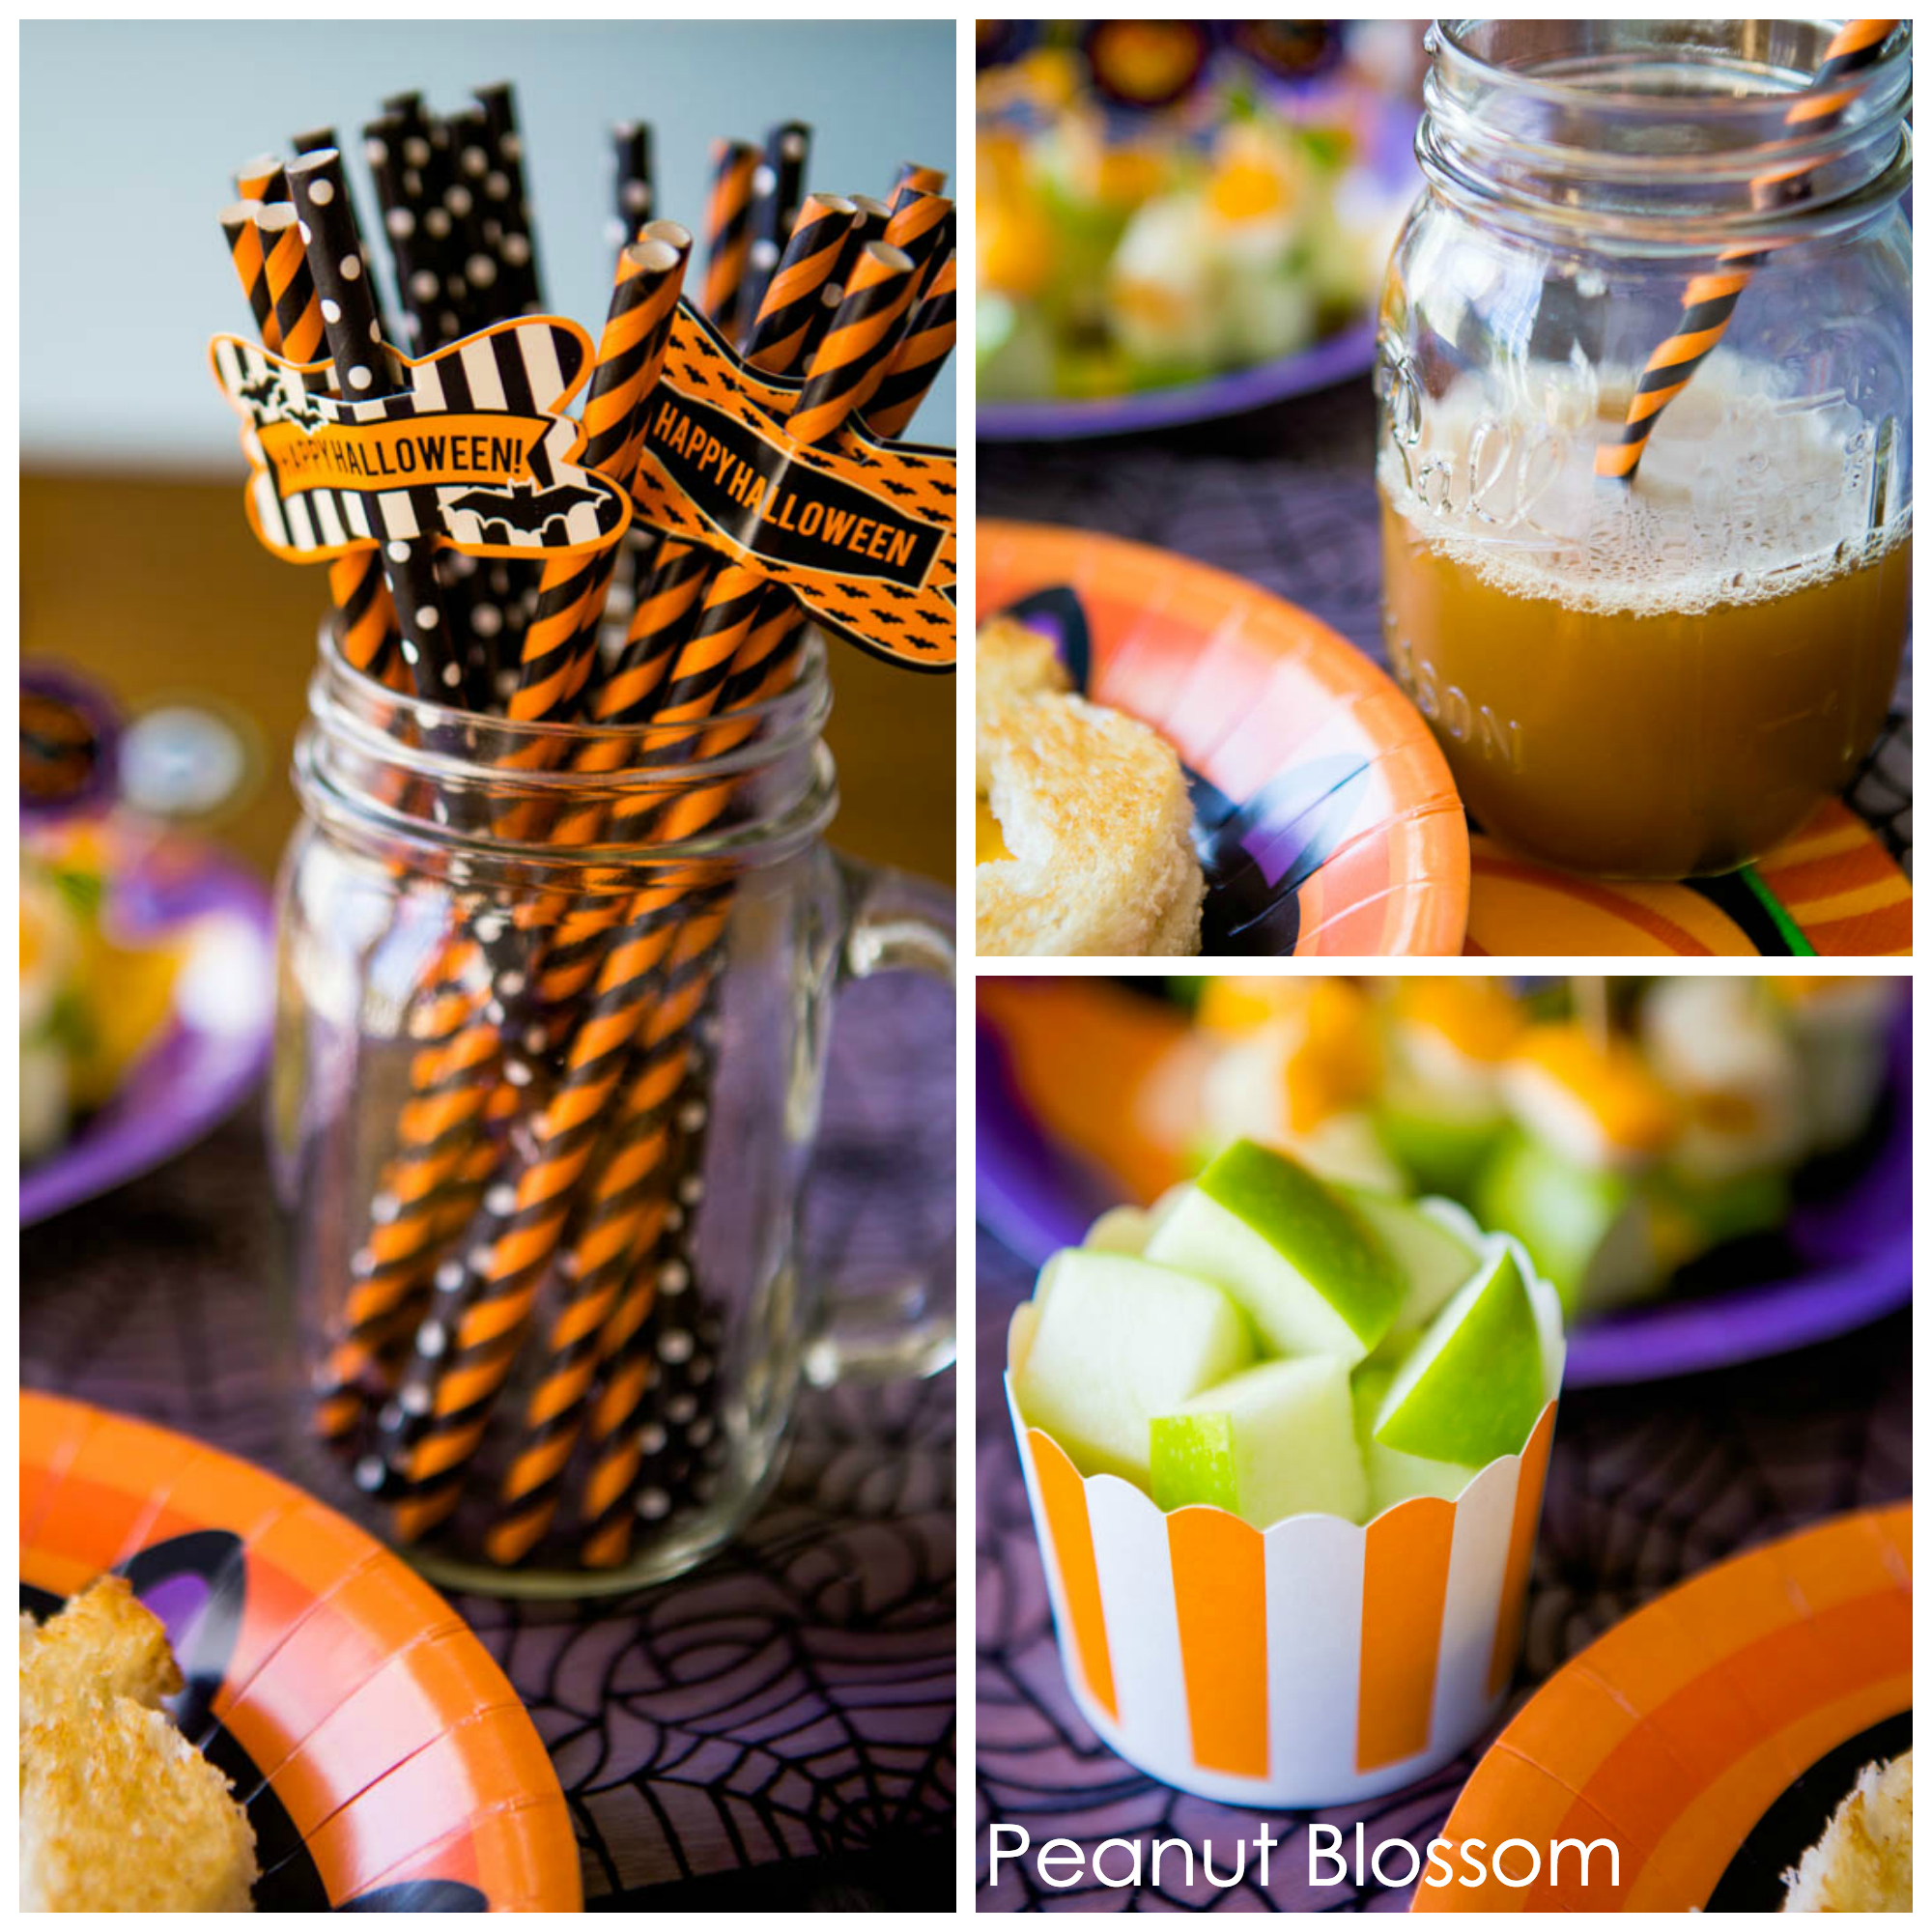 18 ridiculously easy Halloween recipes kids can help make